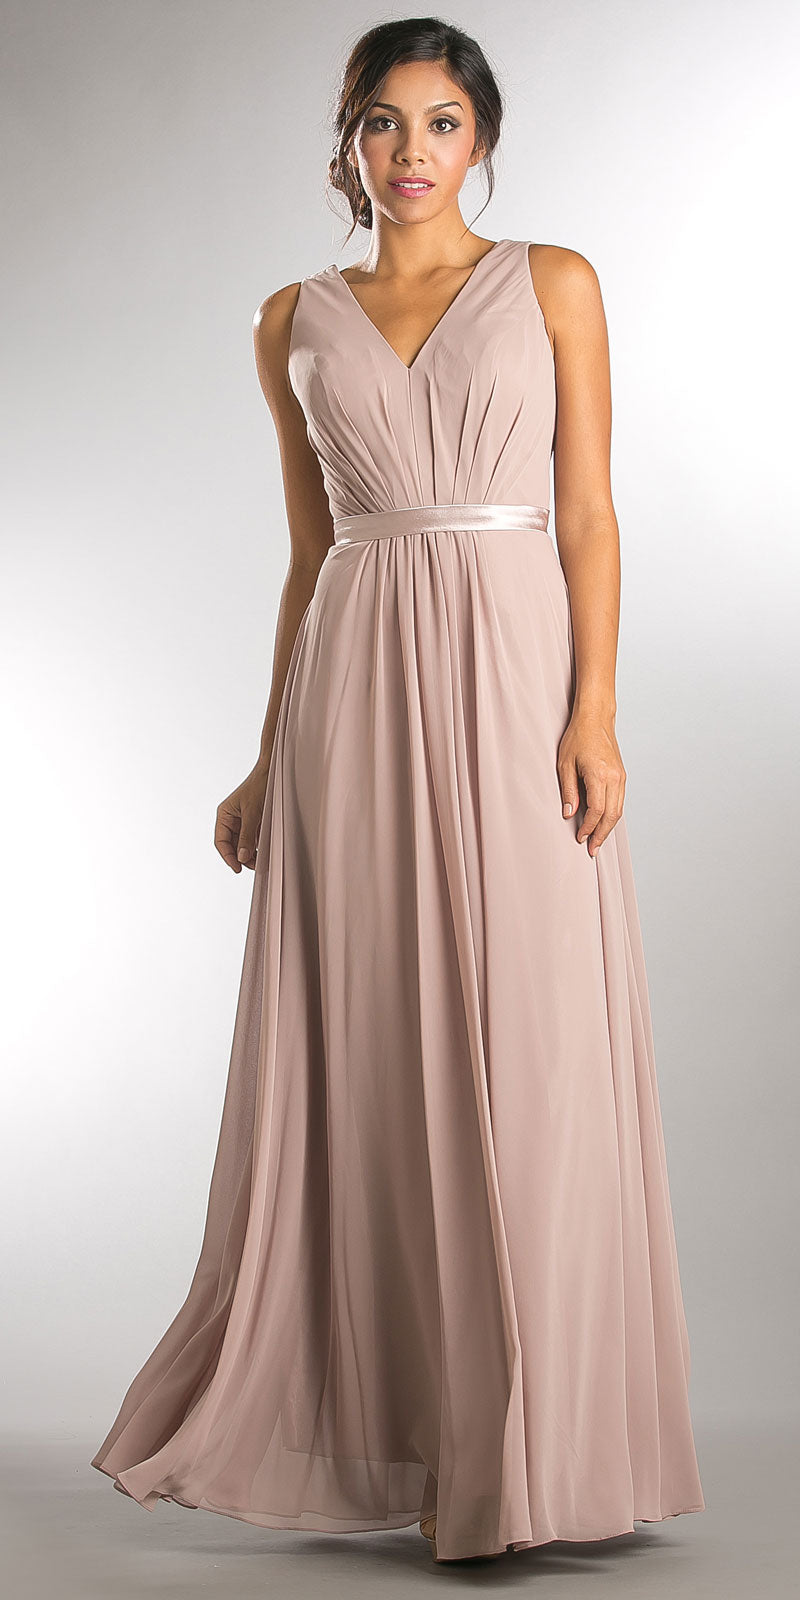 Image of V-neck Sleeveless Ruched Bodice Long Bridesmaid Dress in Taupe